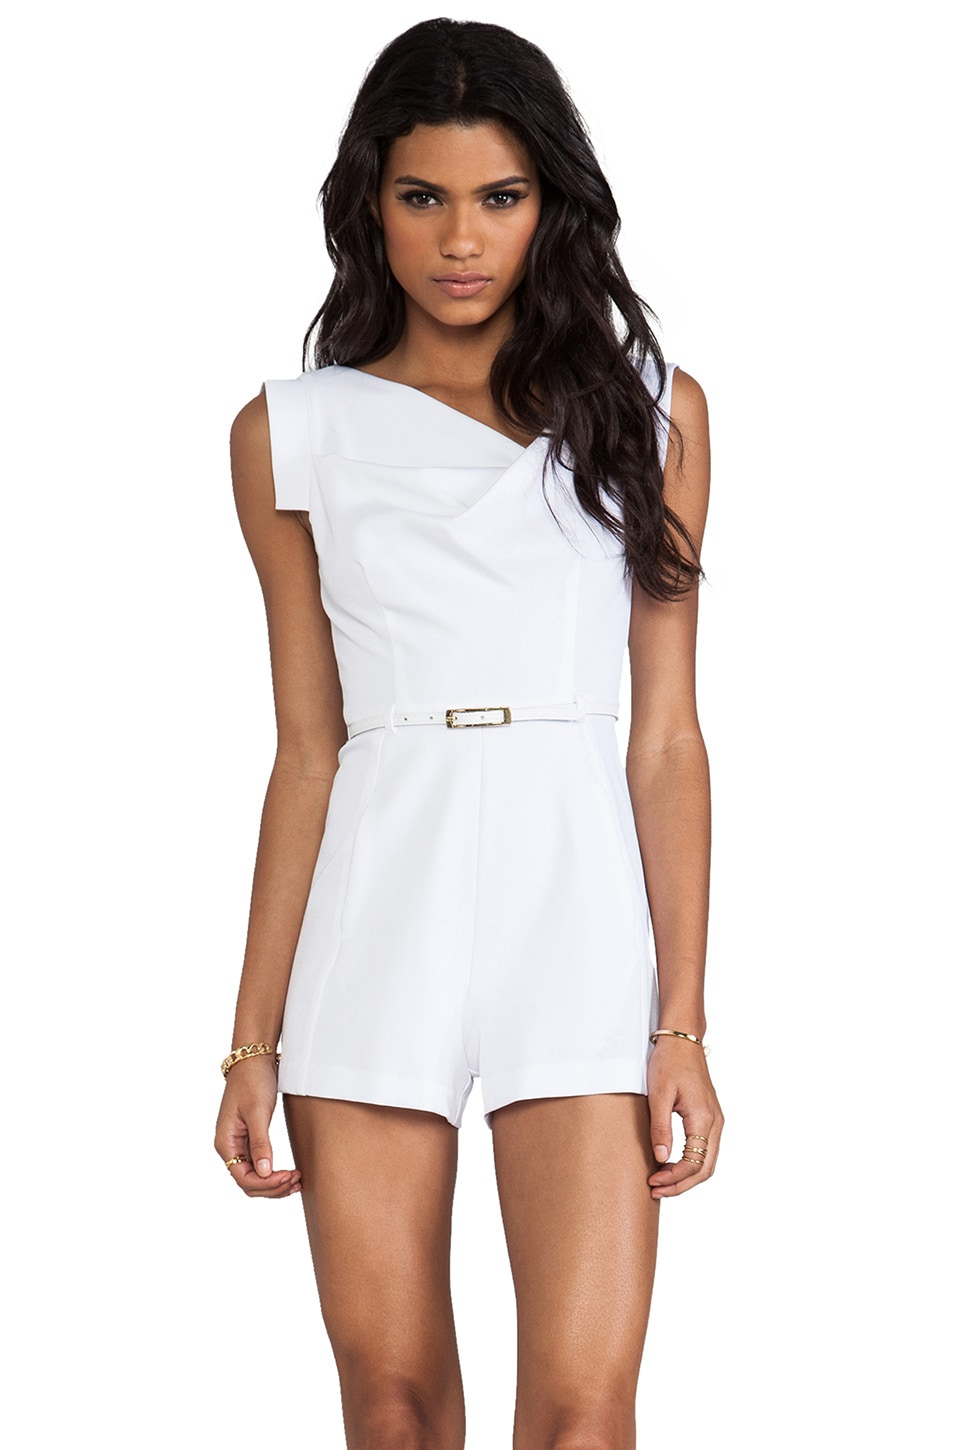 Black Halo Jackie-O Romper in White